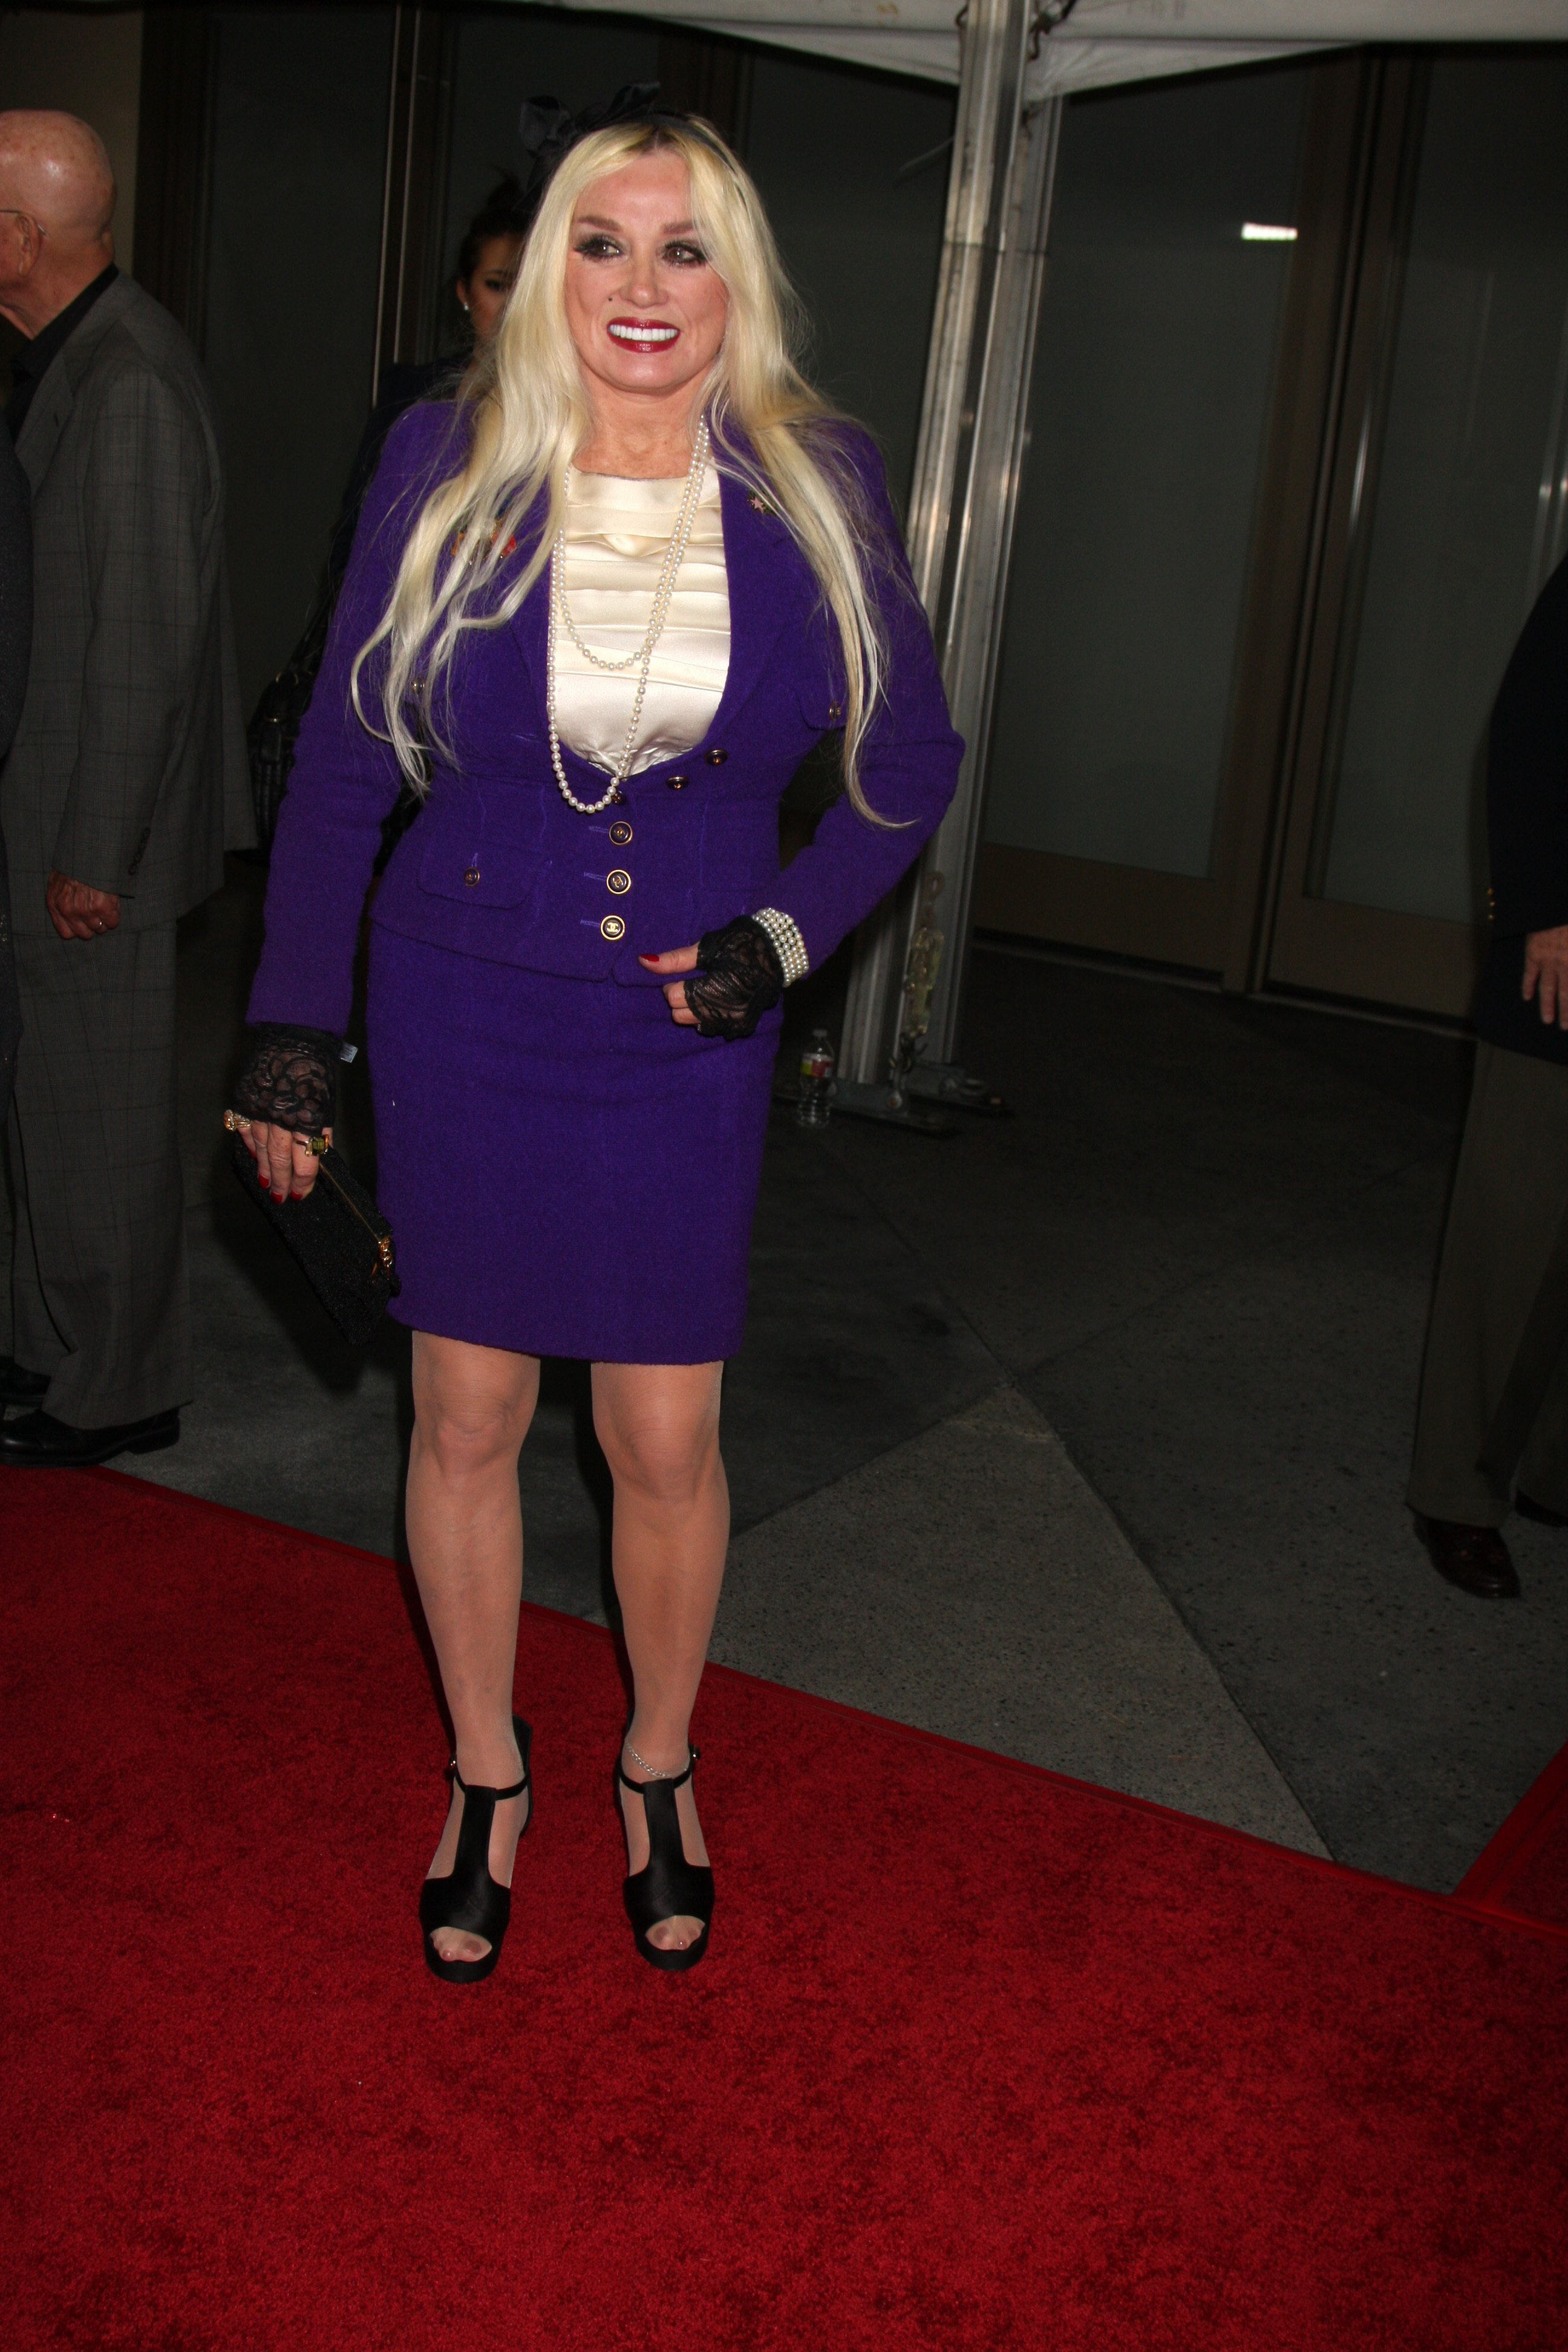 Mamie Van Doren arrives at the Hollywood Walk of Fame 50th Anniversary Celebration at Hollywood & Highland on November 3, 2010 in Los Angeles, CA | Photo: Shutterstock